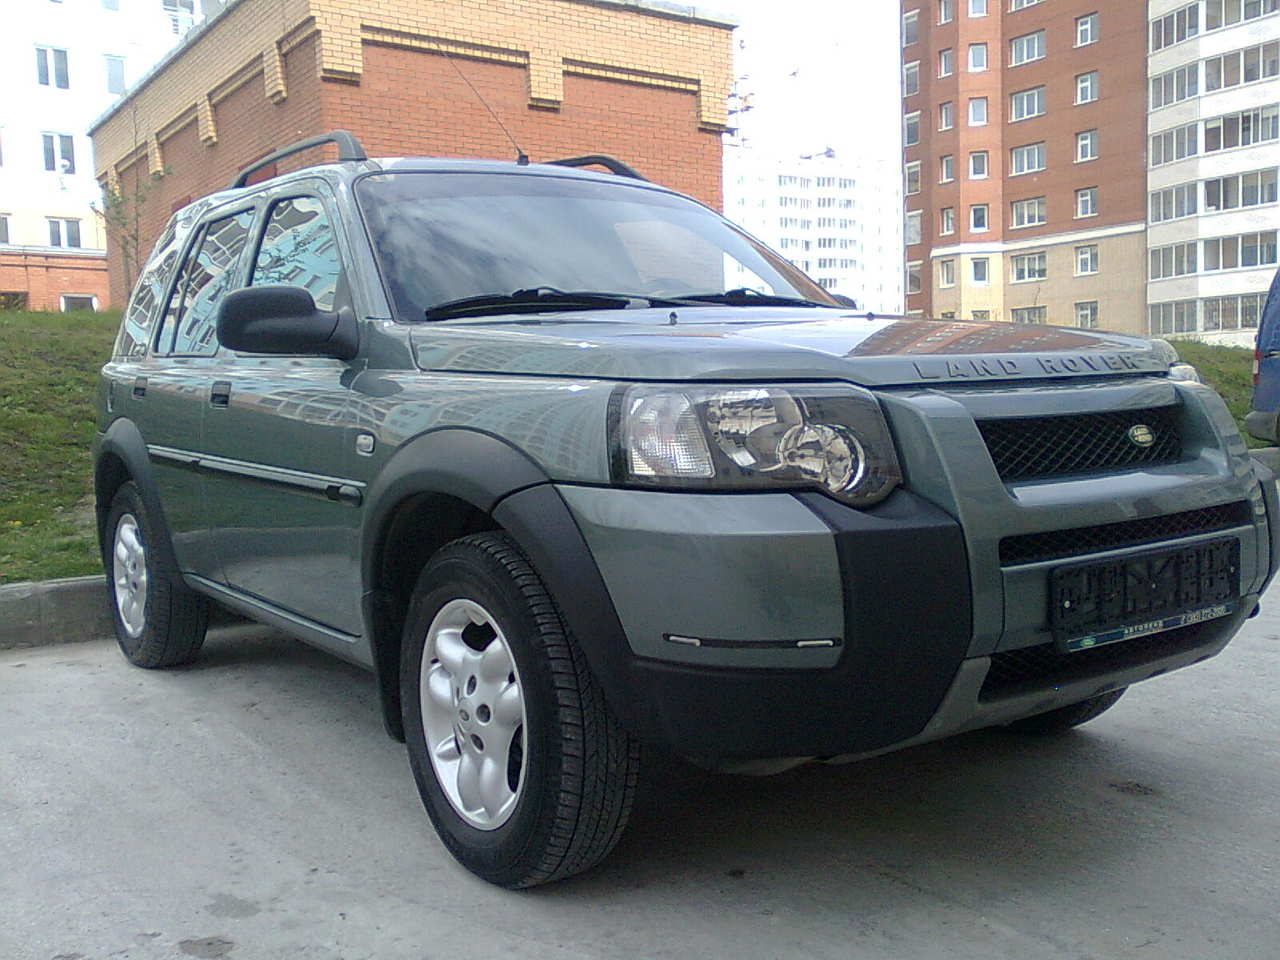 used 2005 land rover freelander photos 1800cc gasoline. Black Bedroom Furniture Sets. Home Design Ideas